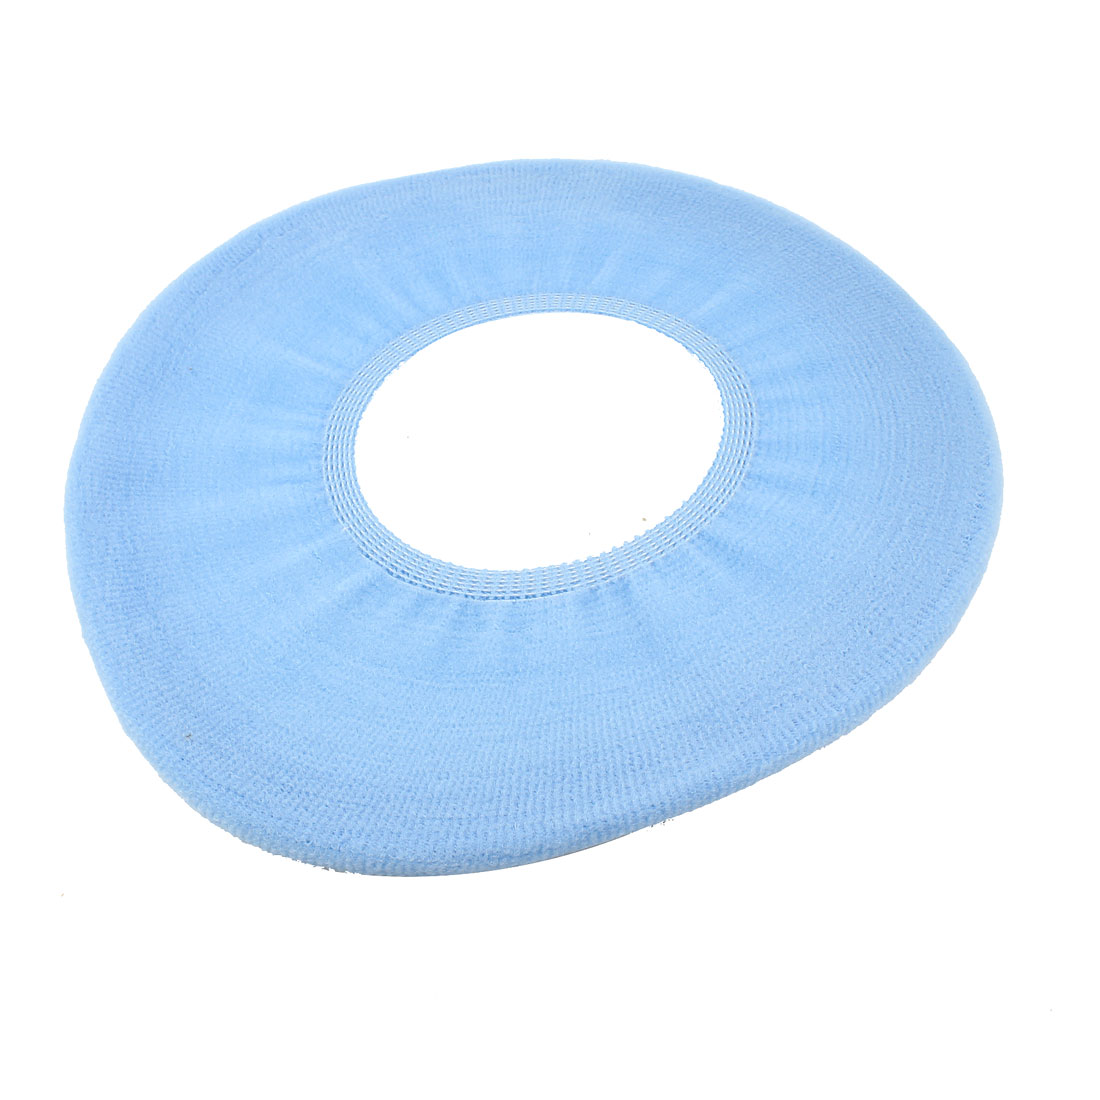 Light Blue Round Shaped Closestool Toilet Seat Lid Cover Warmer Pad Mats